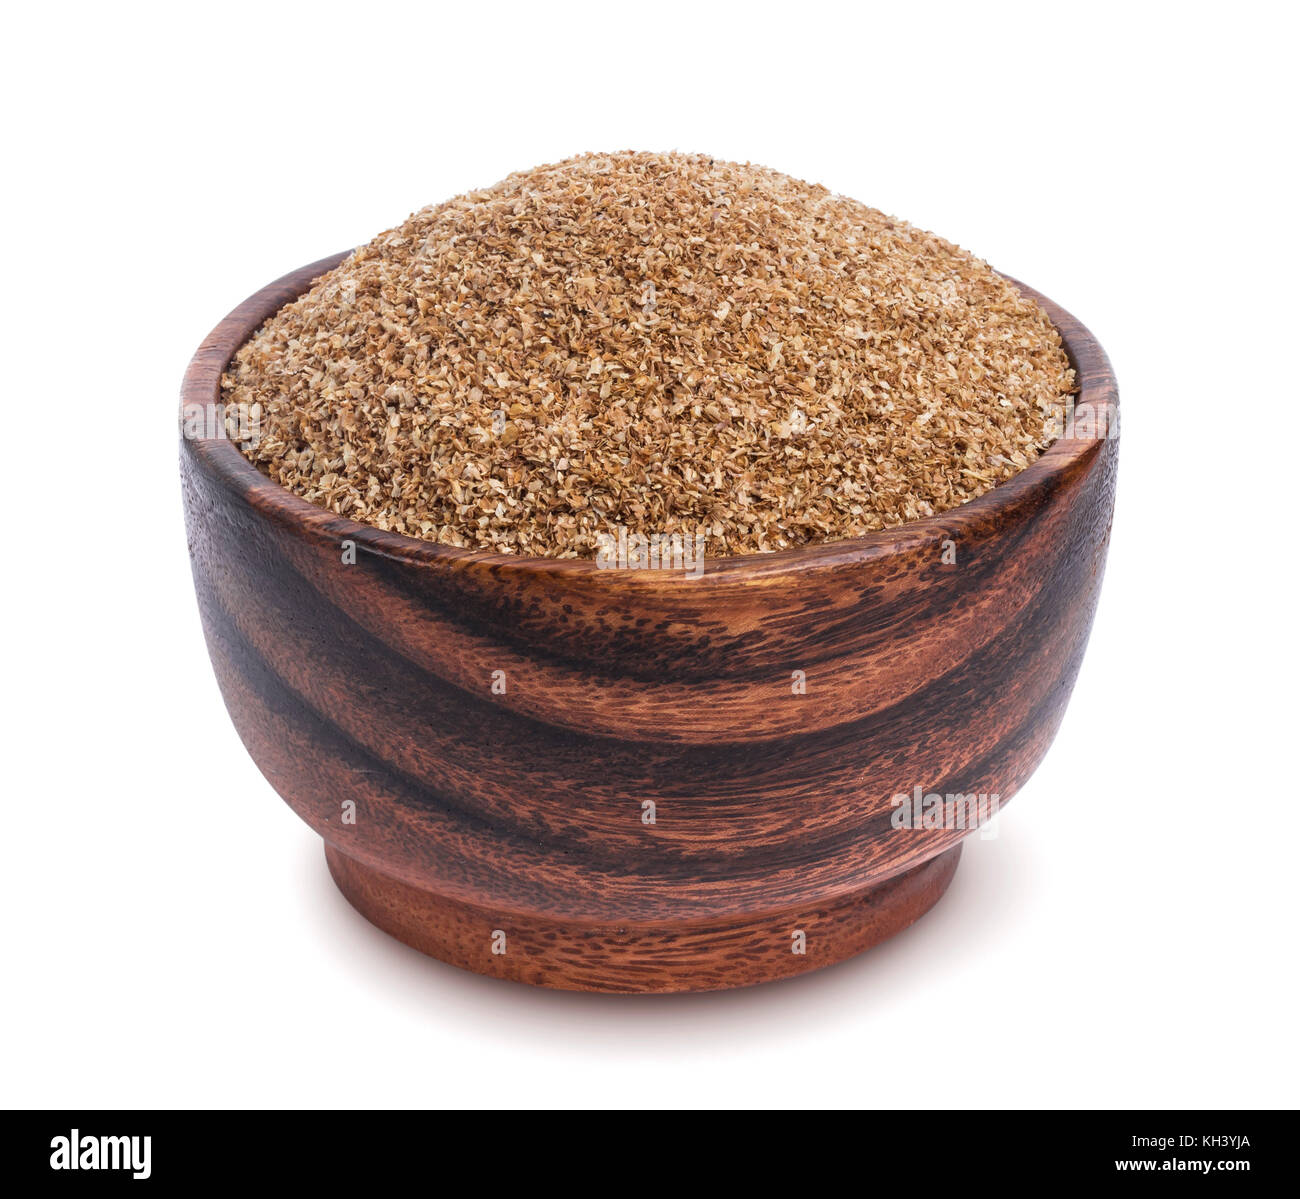 Fiber food. Dry ground fiber in bowl isolated on white background - Stock Image